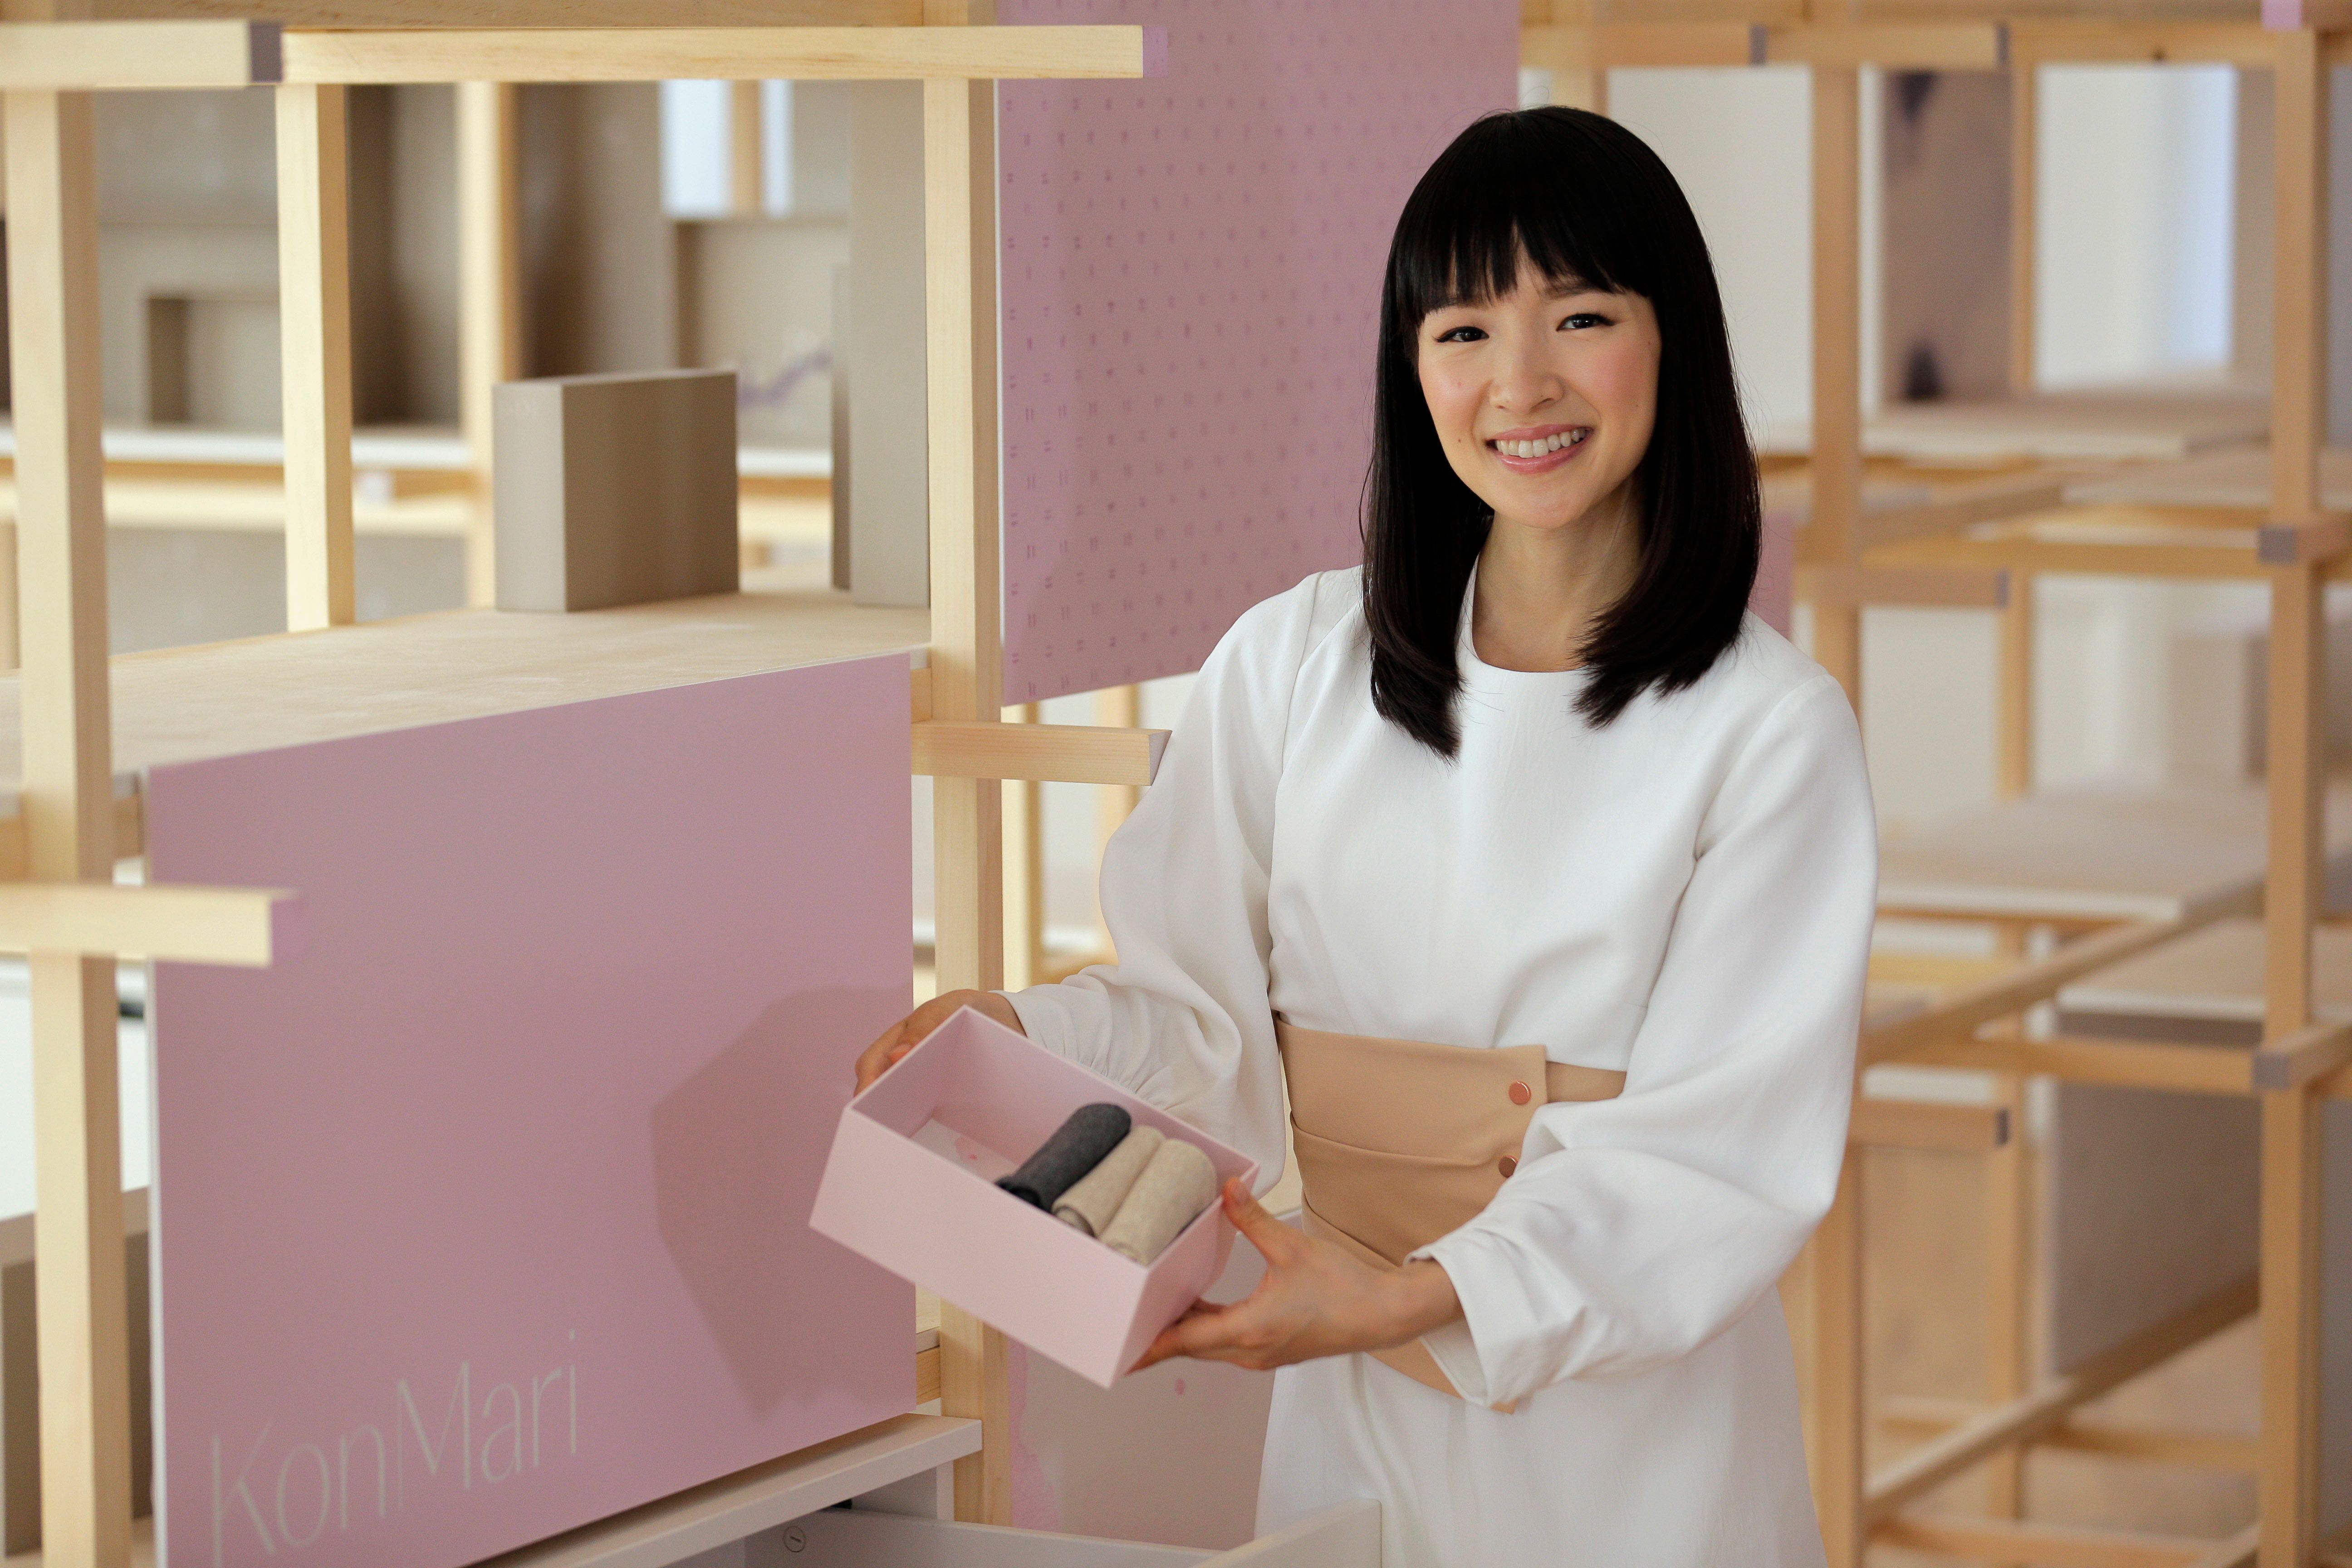 Marie Kondo's first book in the U.S., <i>The Life-Changing Magic of Tidying Up</i>, made The New York Times best seller list.